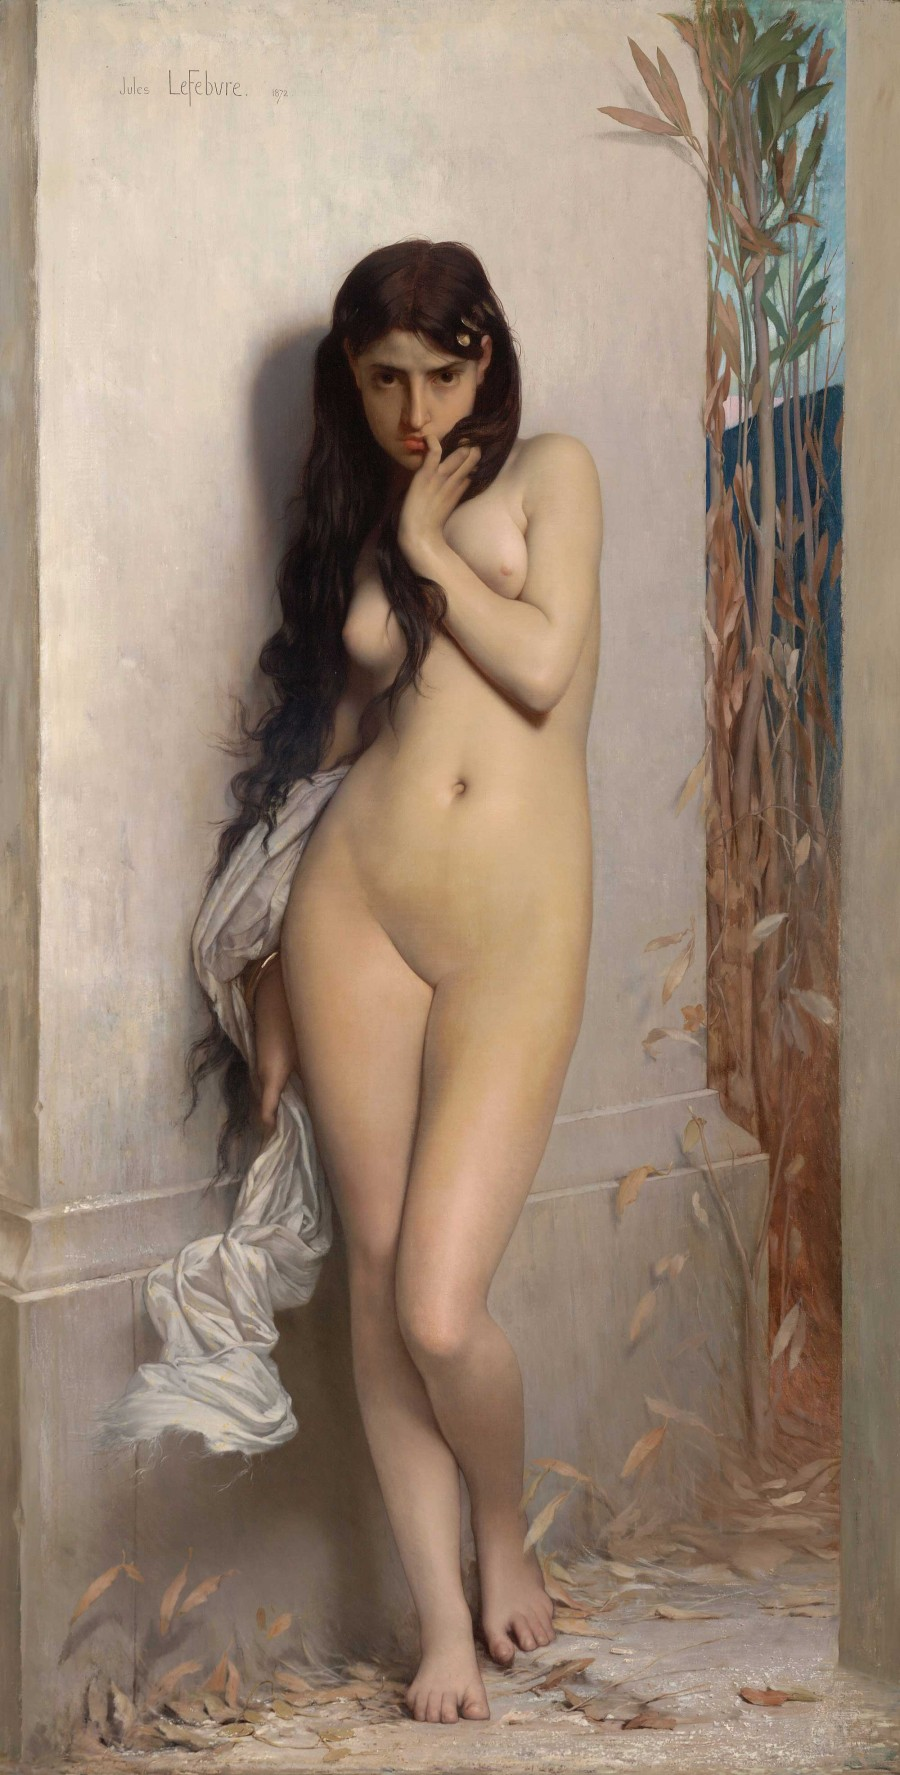 """La cigale"" (""The Grasshopper"") by Jules Joseph Lefebvre, 1972, oil on canvas, w1238 x h1867 cm (Unframed). Rights: National Gallery of Victoria, Melbourne, Felton Bequest, 2005."